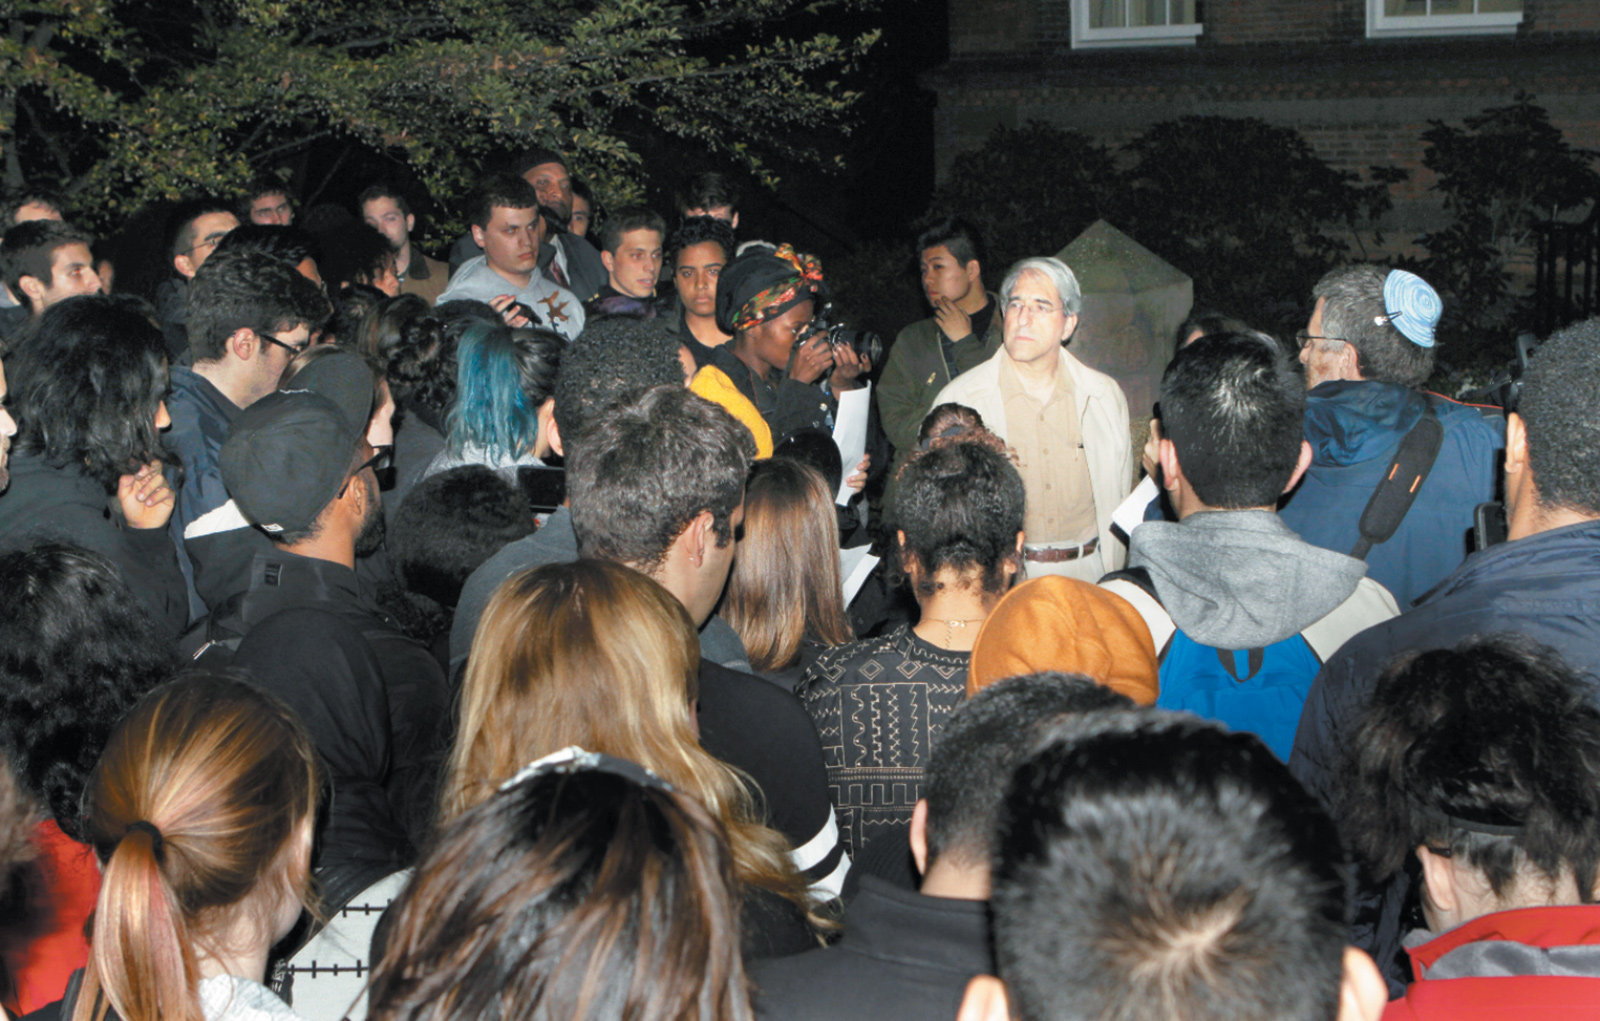 Students reading a set of demands to Yale President Peter Salovey in front of his house, New Haven, Connecticut, November 2015